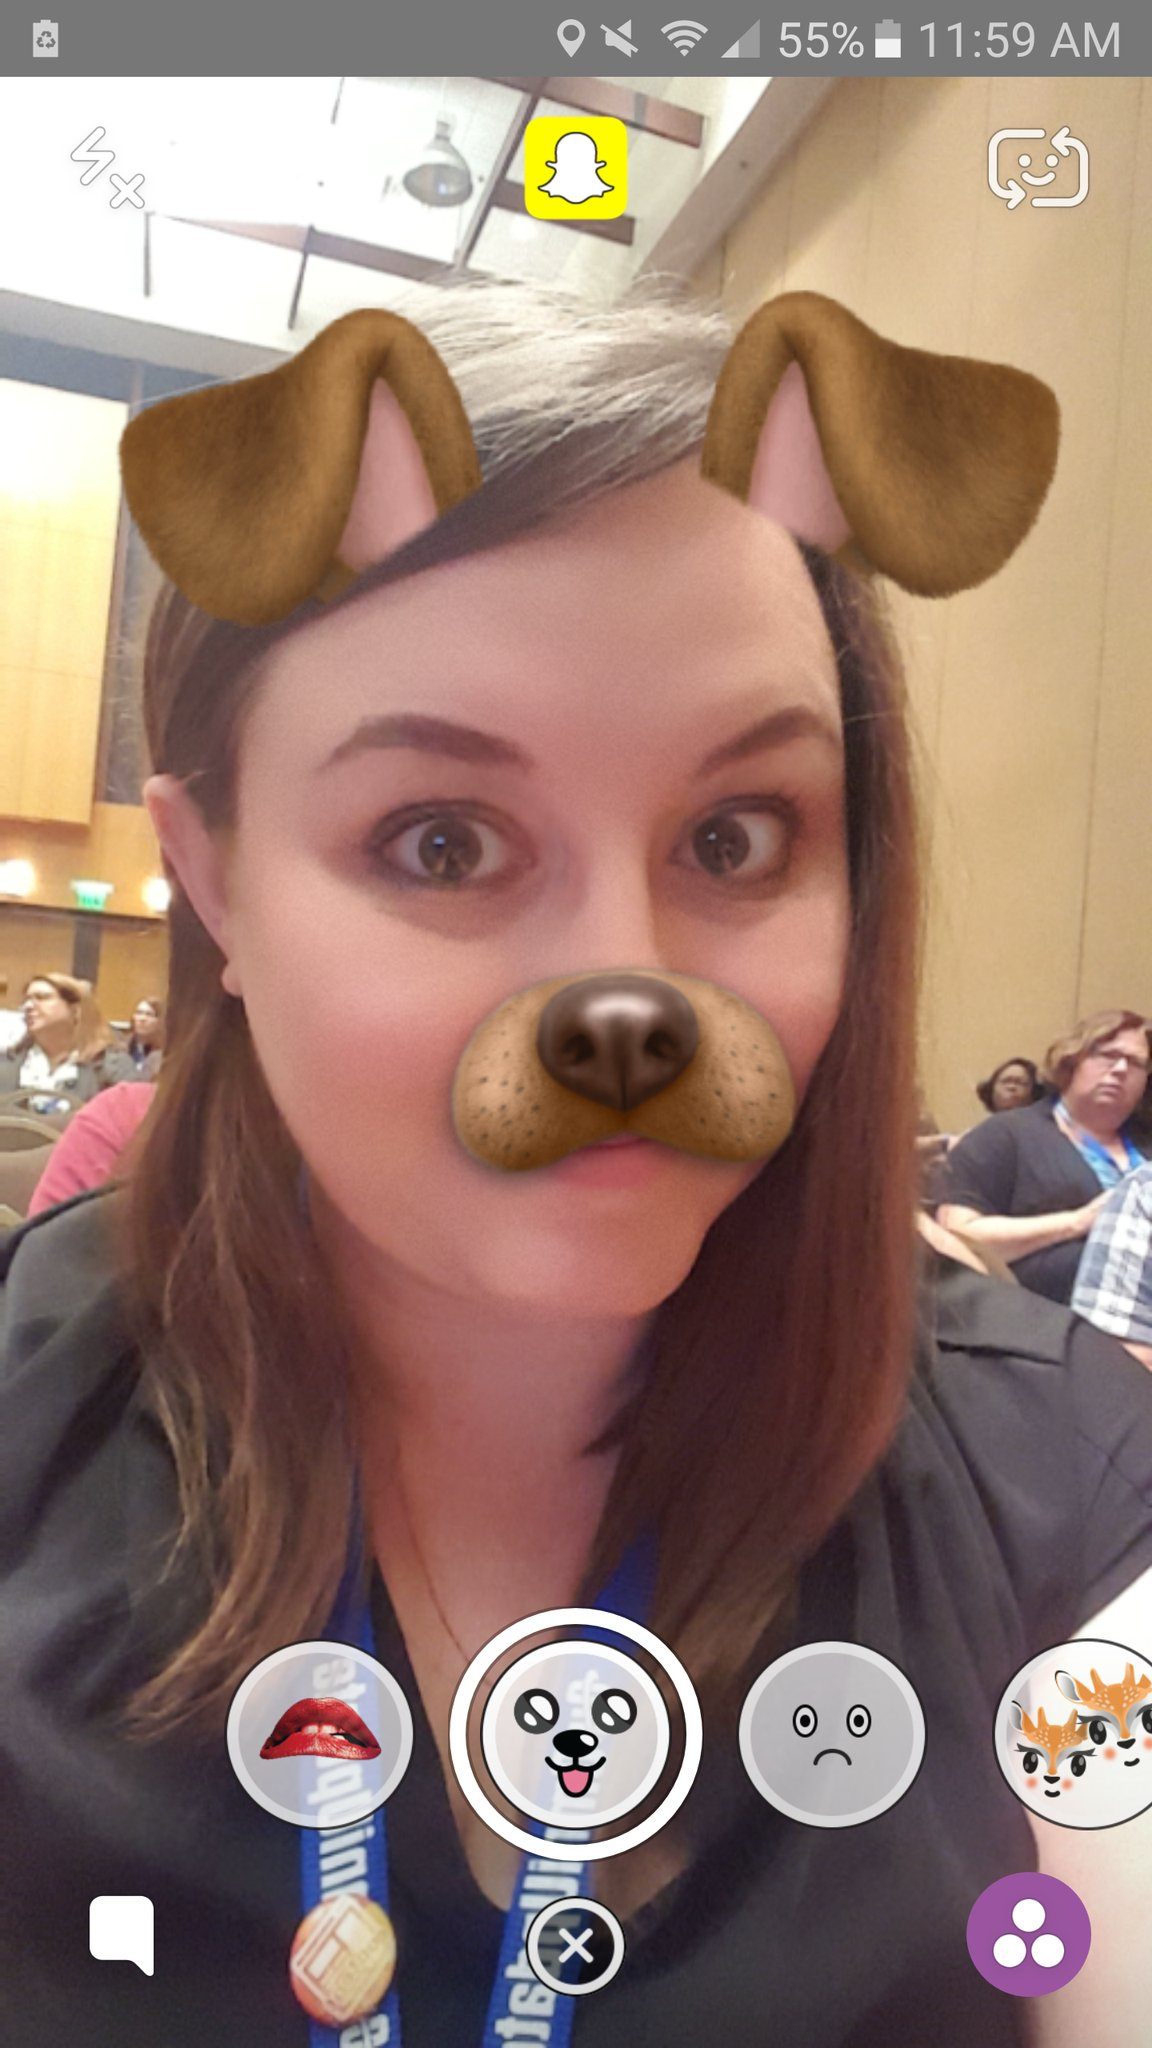 Snapchat filters=lenses and use computers vision to recognize your face! #heweb16 #mcs10 https://t.co/GJvJQAgAOG